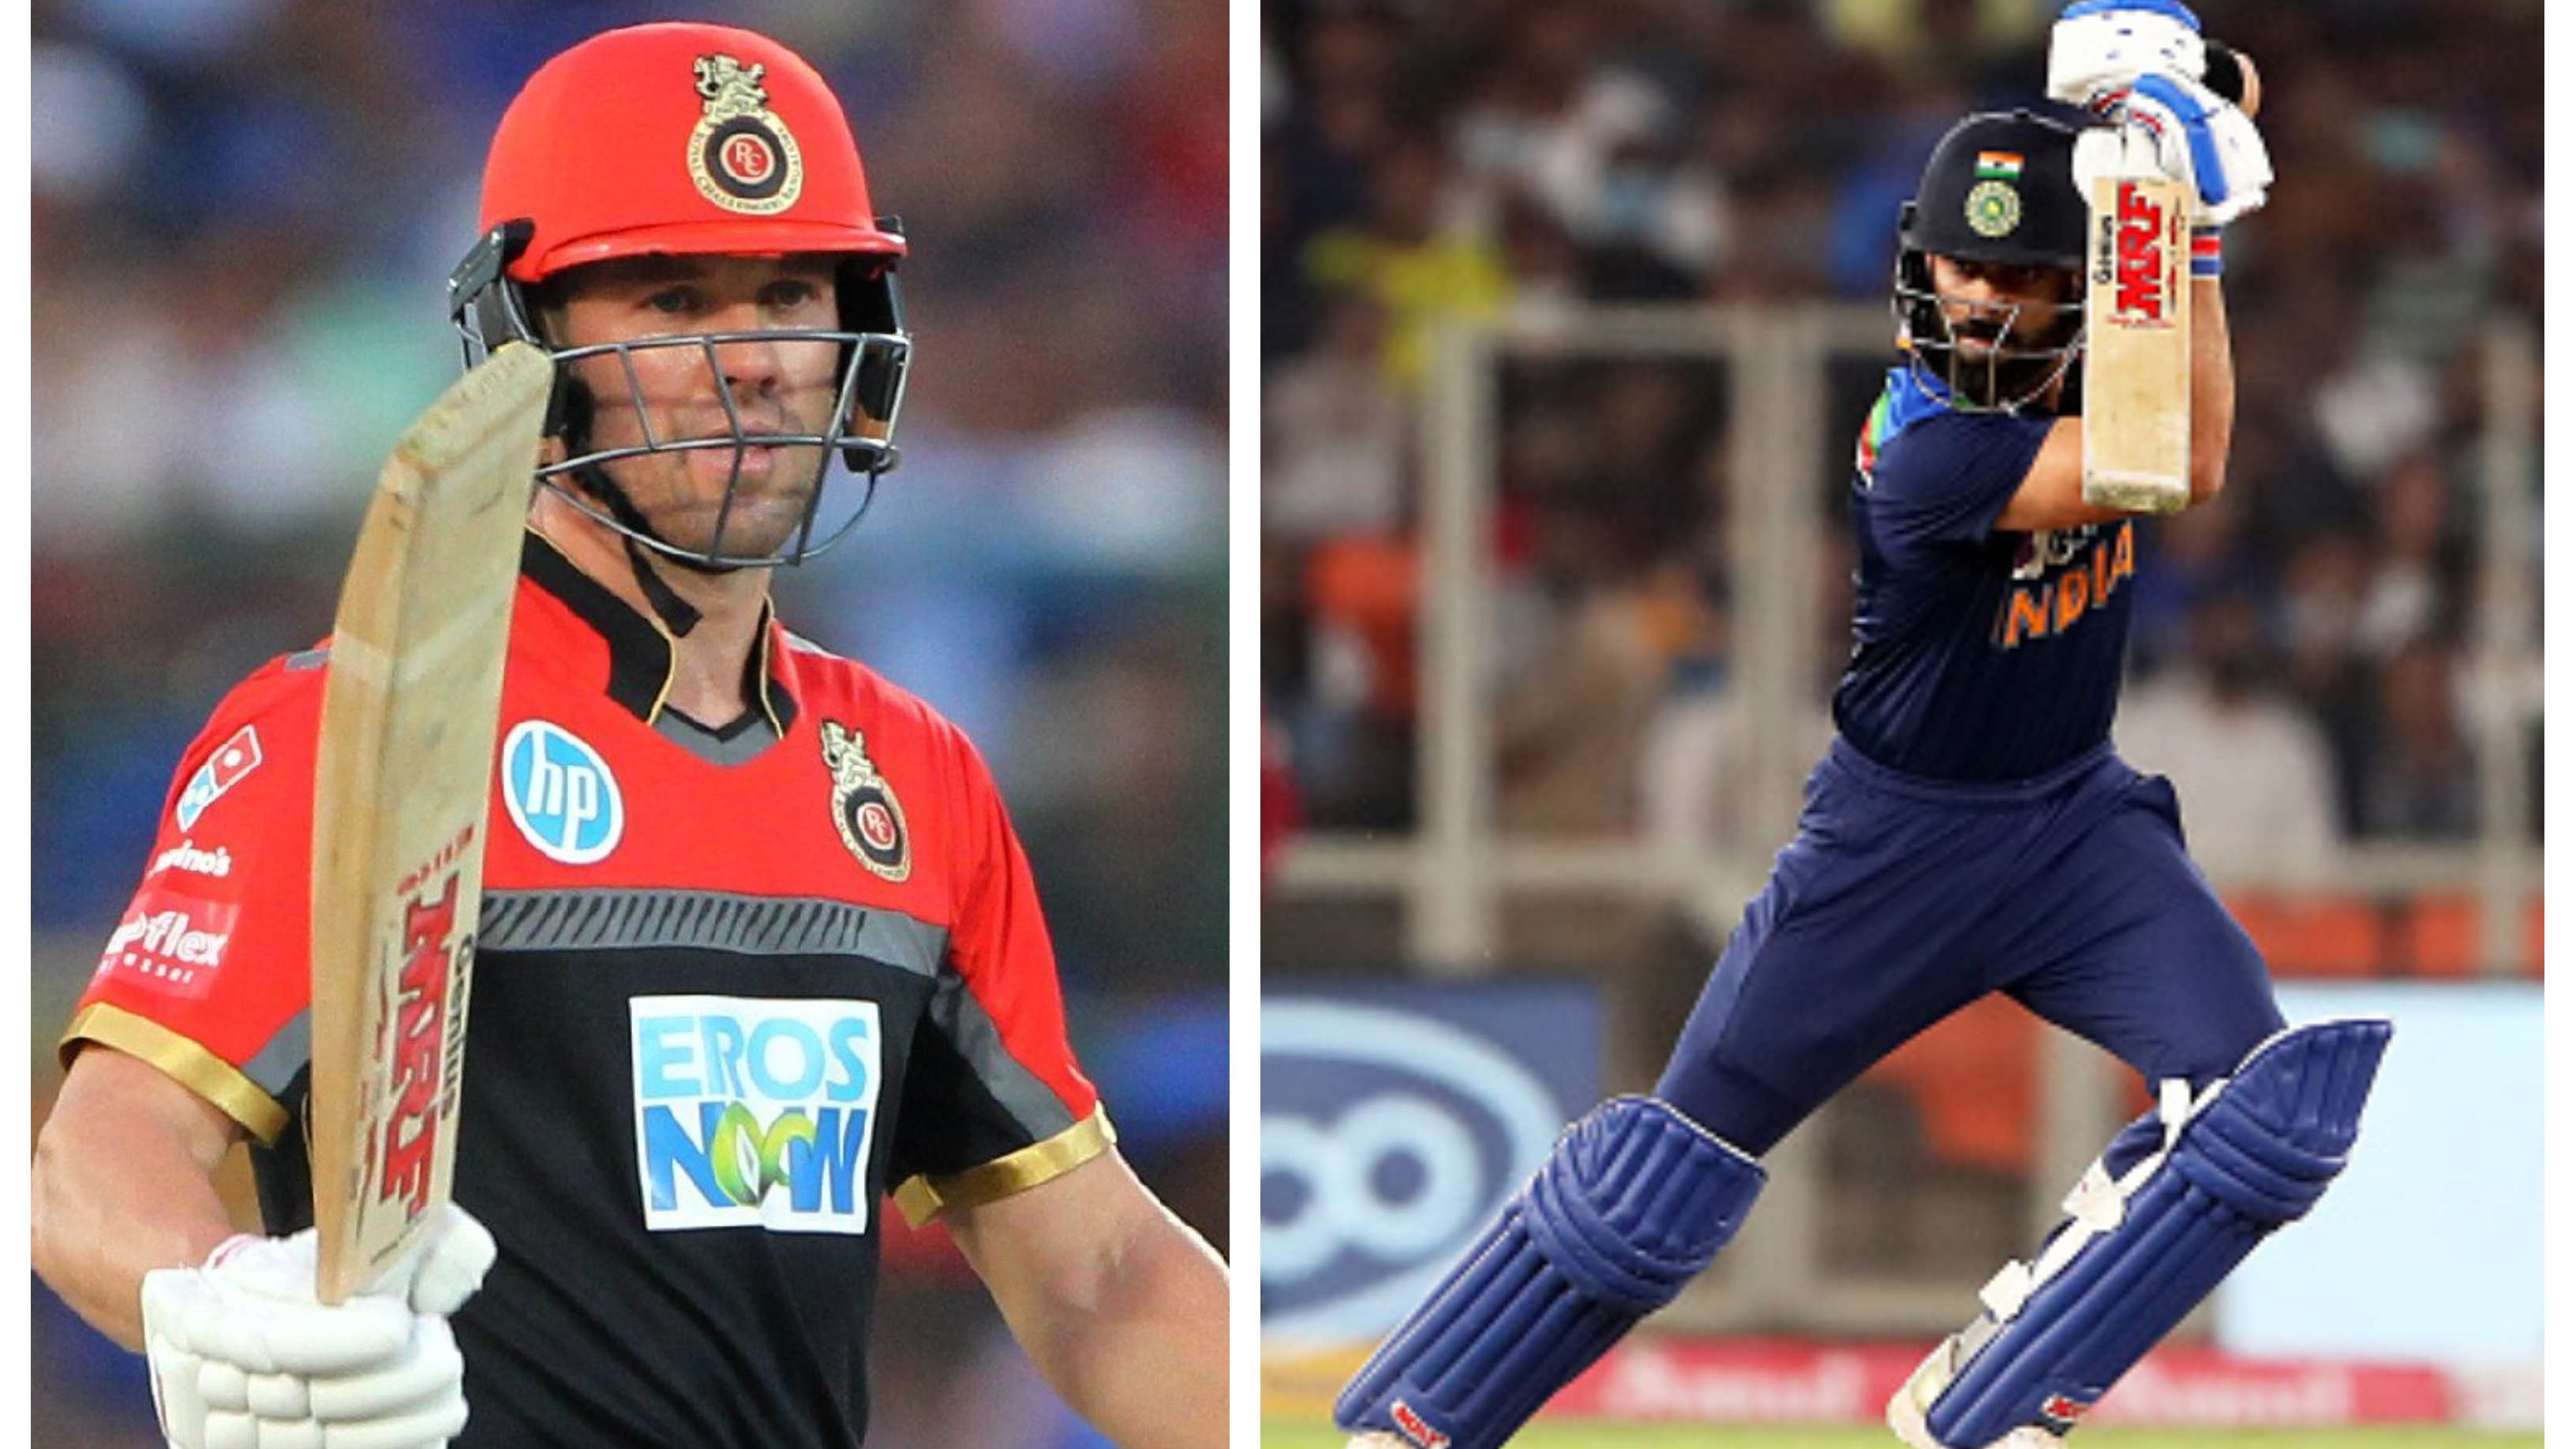 """IND v ENG 2021: Virat Kohli reveals """"special chat with AB de Villiers"""" after match-winning 73* in 2nd T20I"""